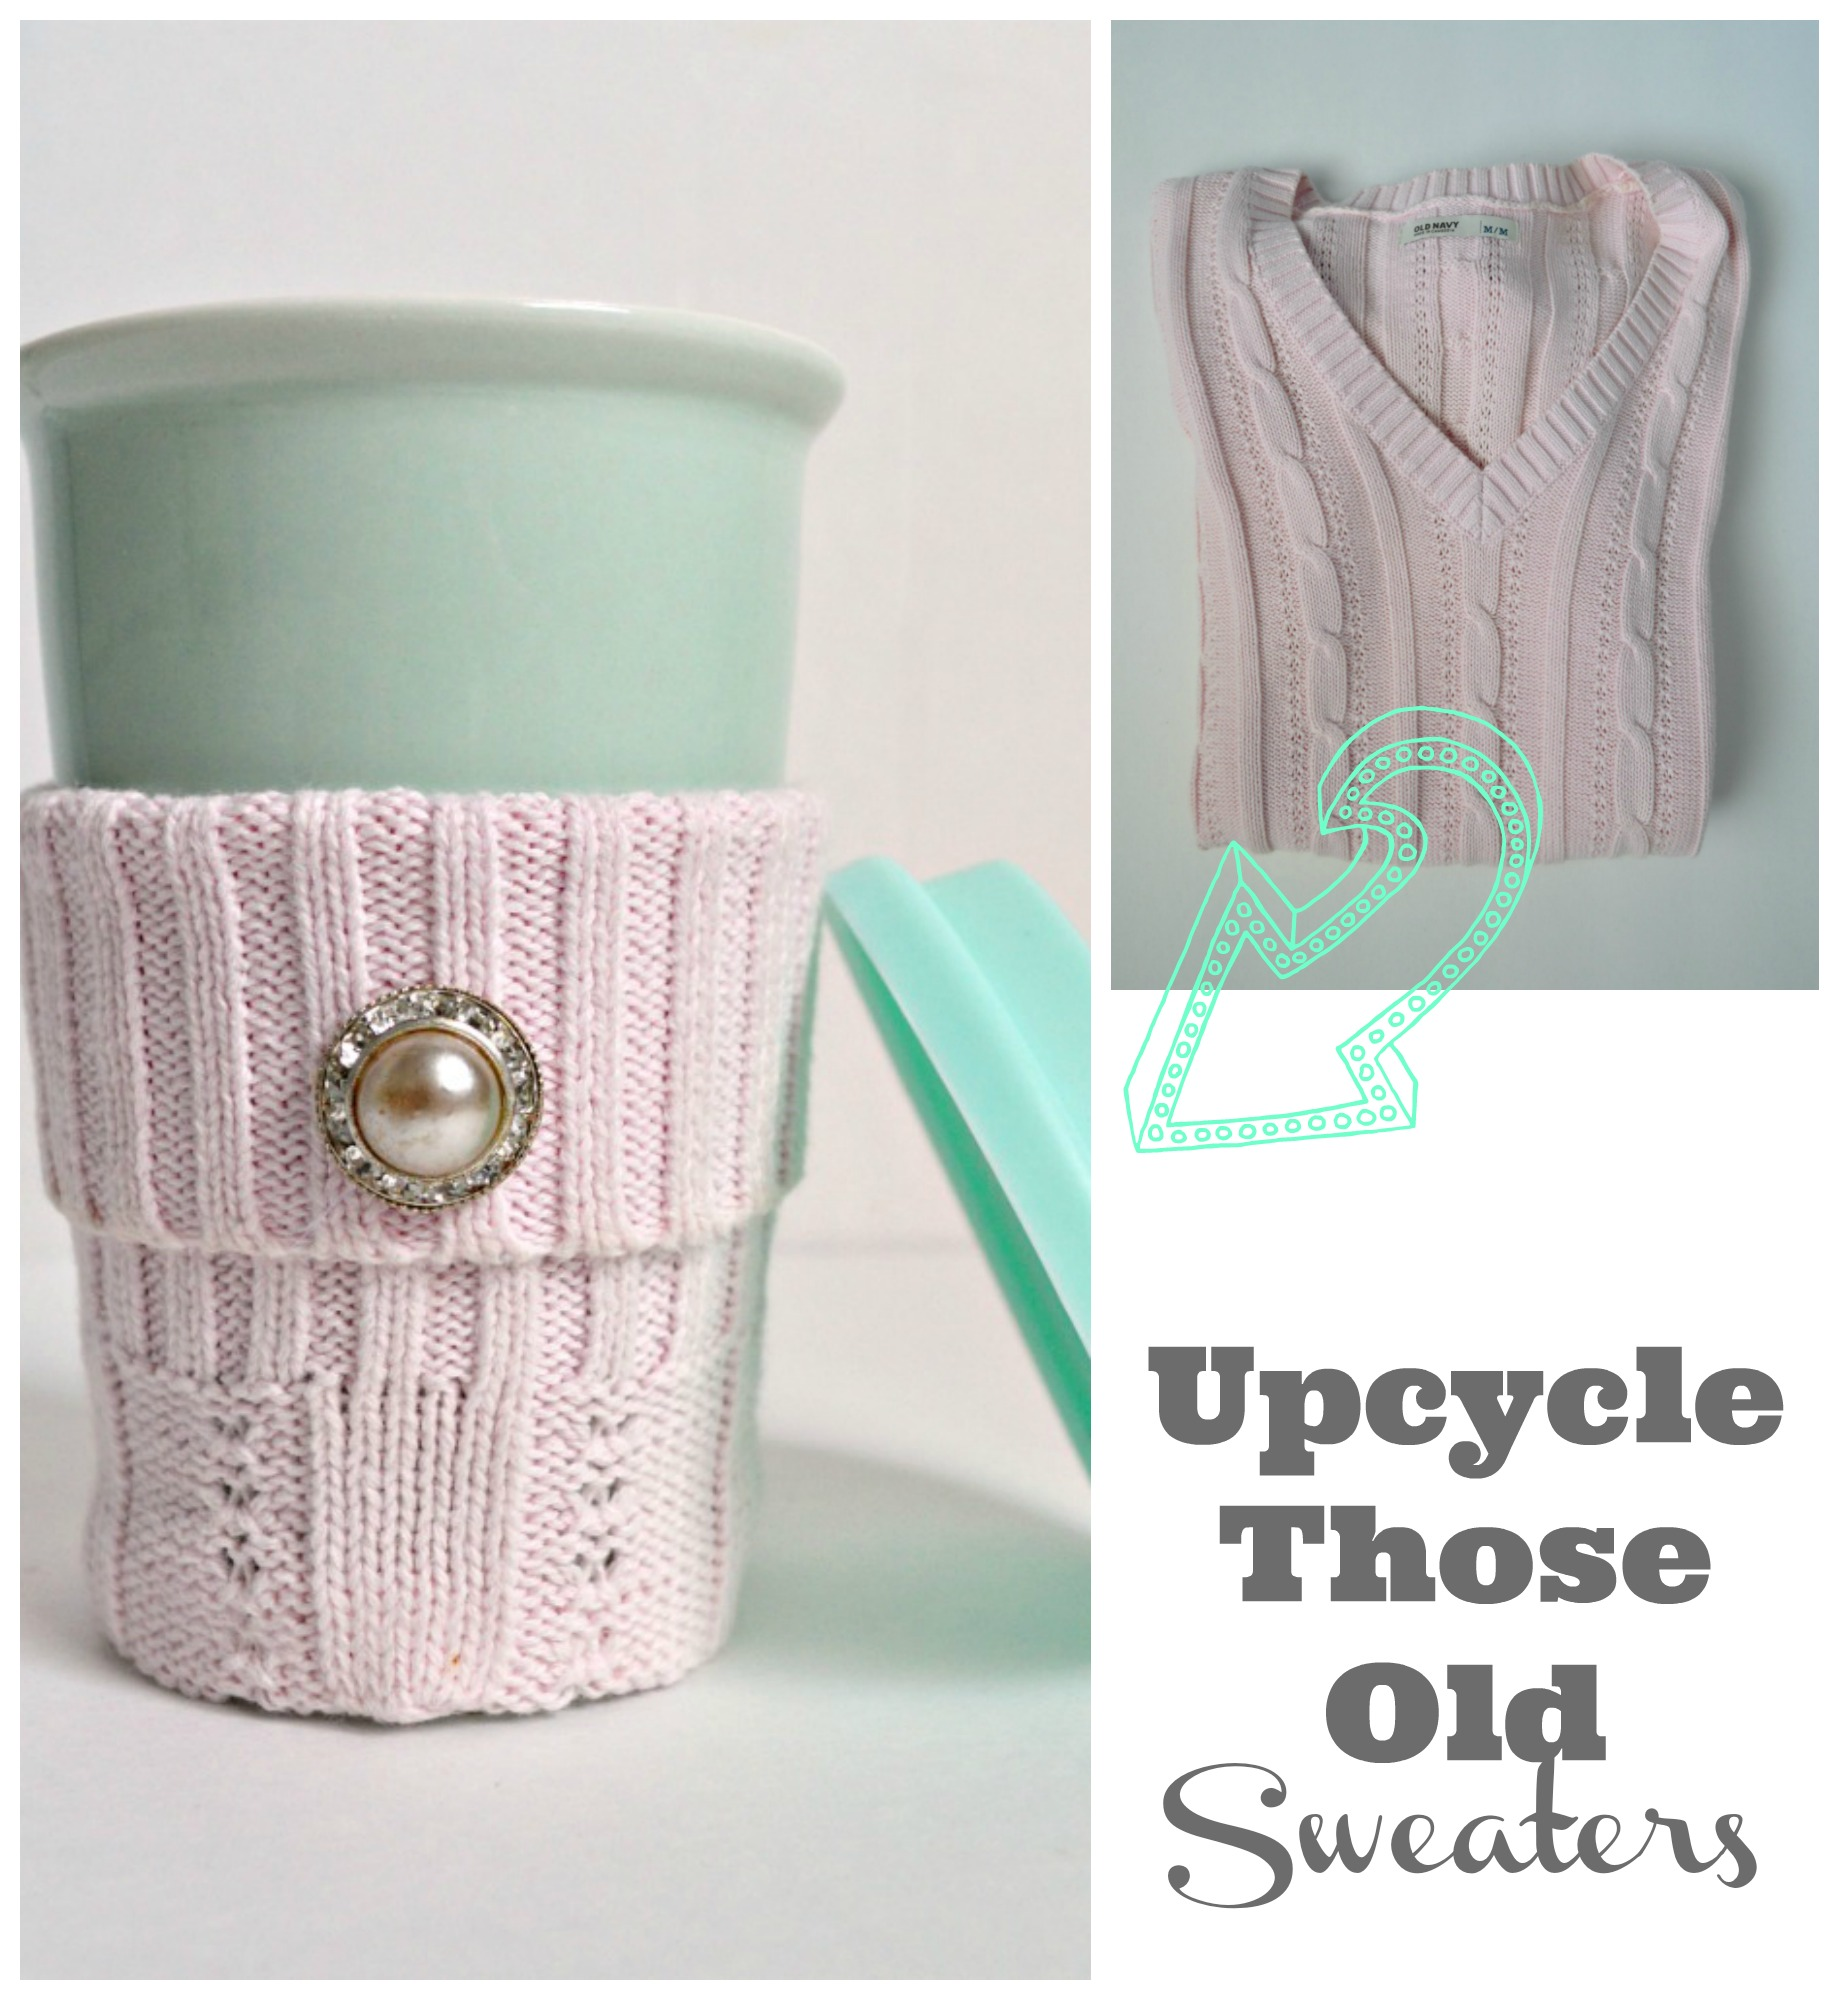 Don't Throw away your old sweaters, upcycle them!